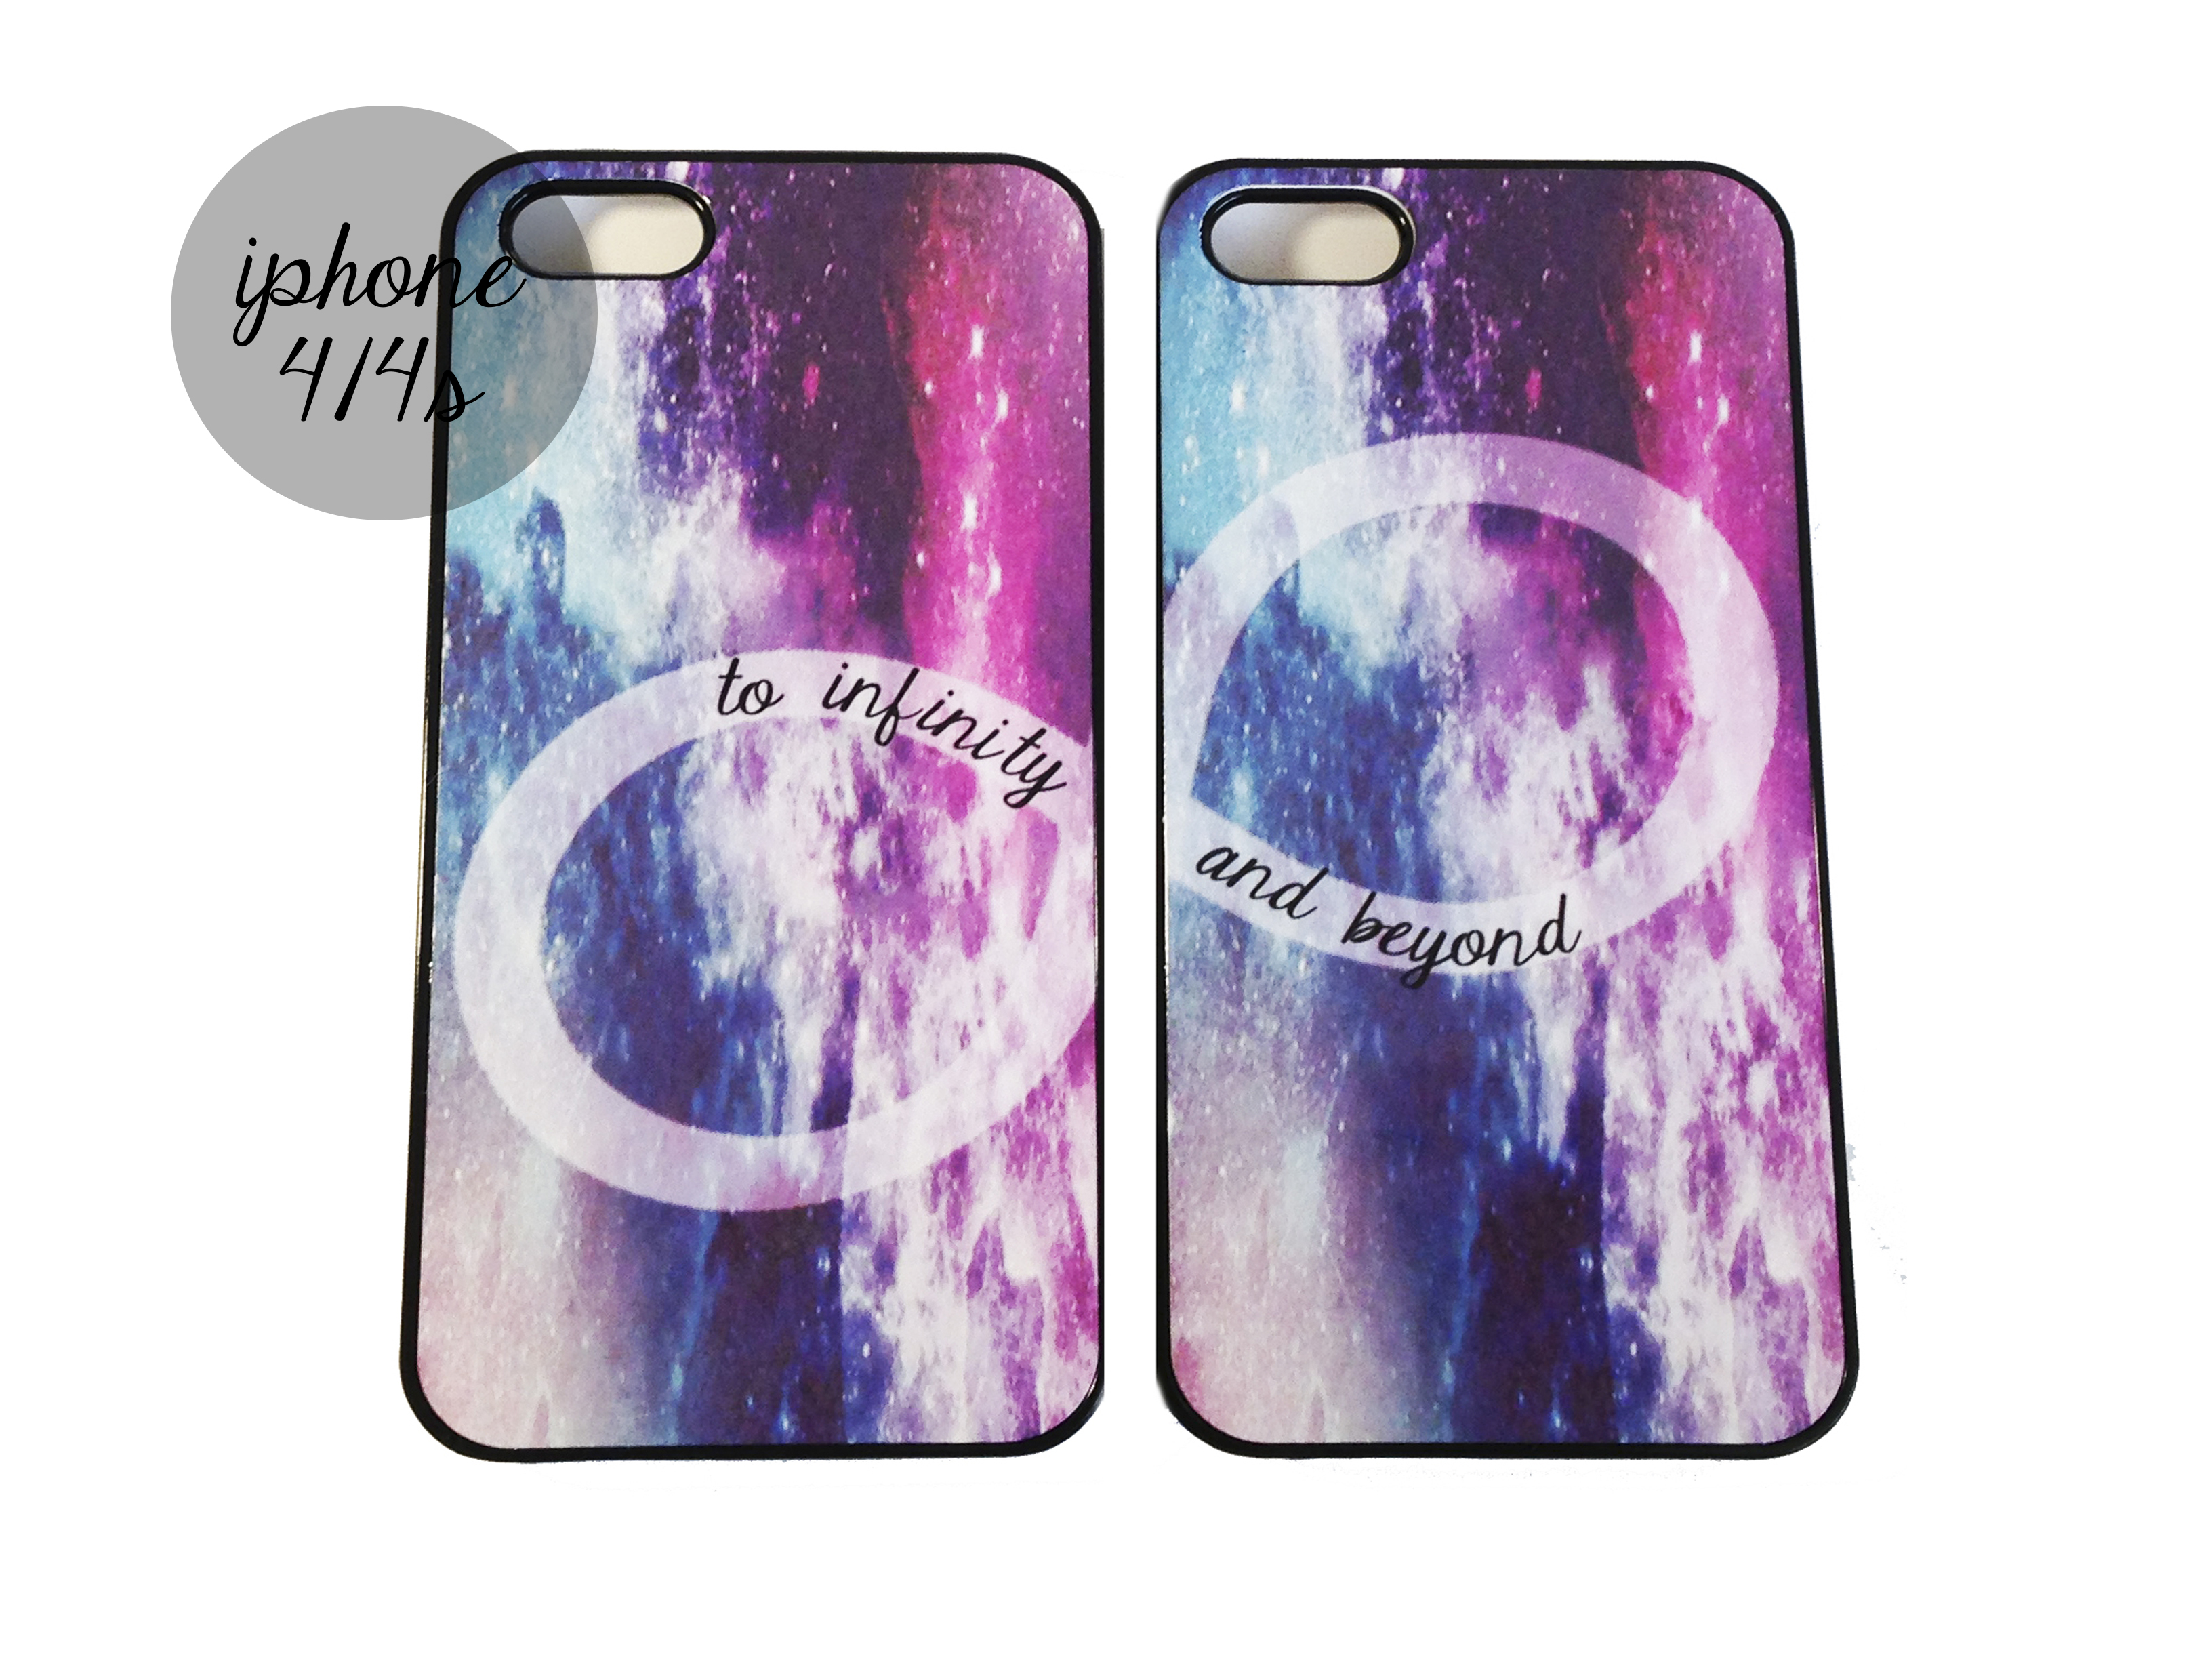 Galaxy To Infinity An Beyond Best Friends Iphone Cases On Luulla